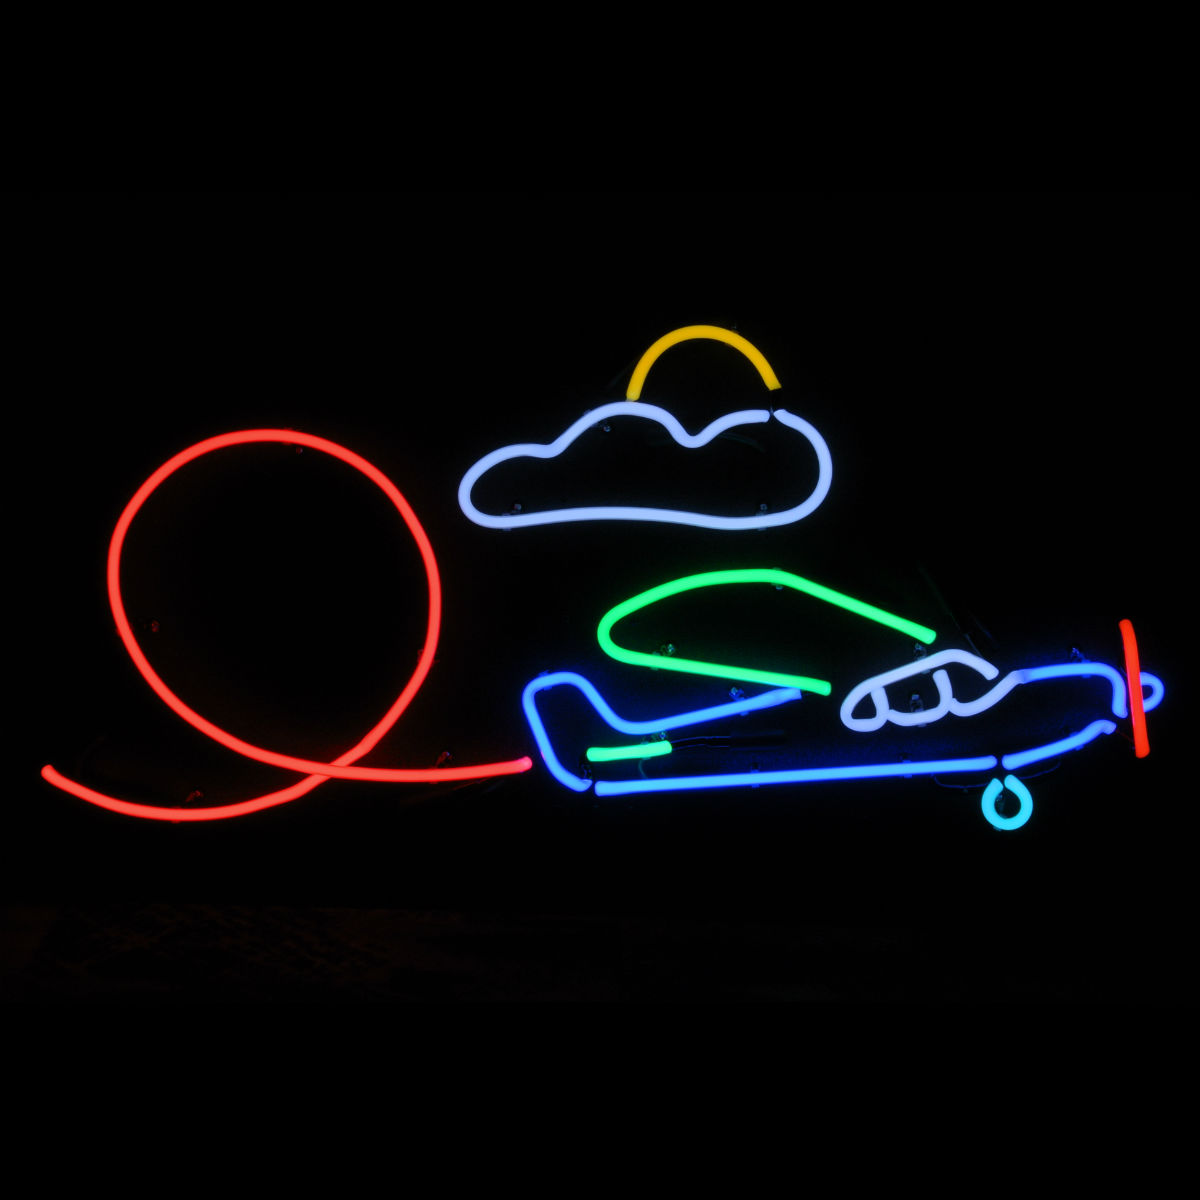 STUNT AIRPLANE NEON LIGHT SCULPTURE - BY JOHN BARTON - BartonNeonMagic.com